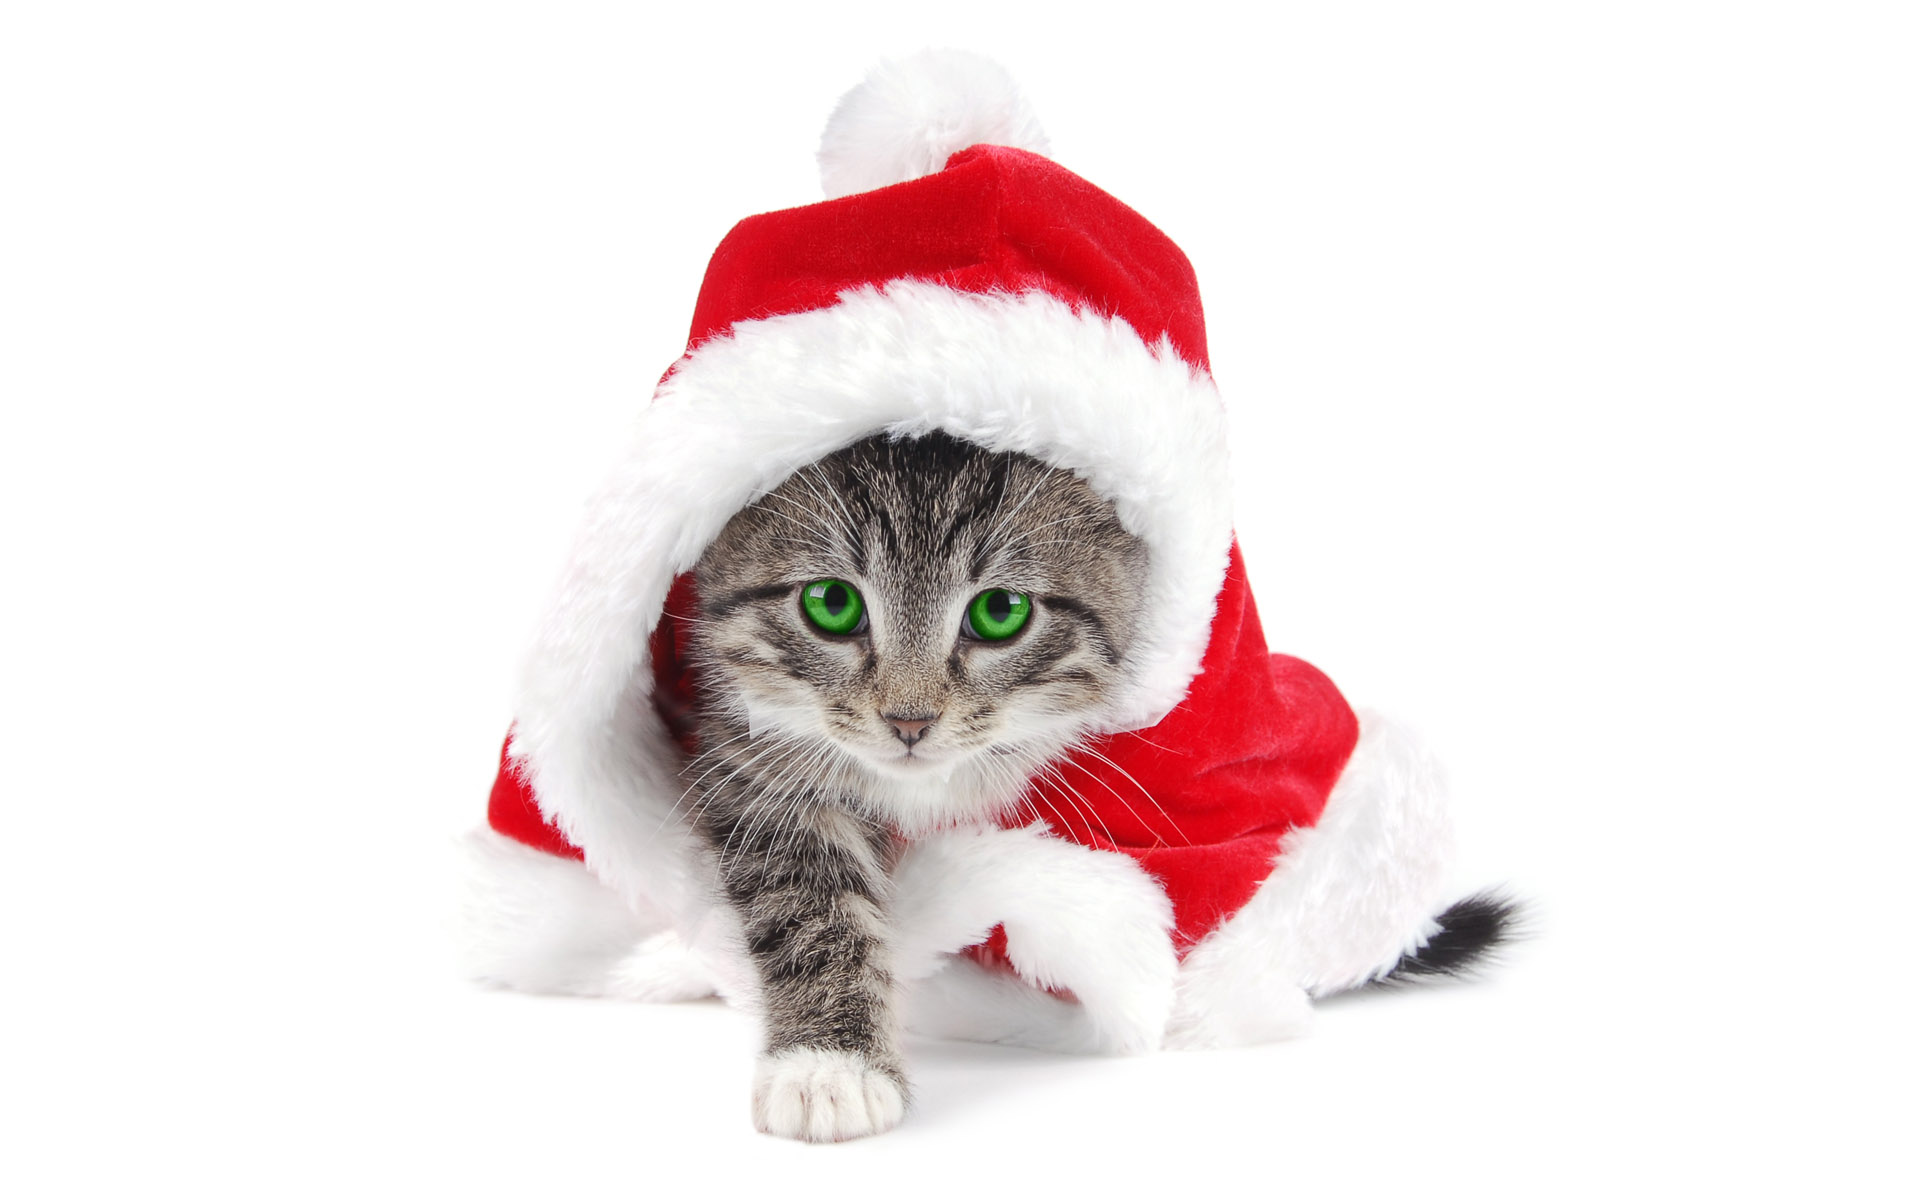 Adorable Hd Wallpapers: Animals Adorable Cat Wearing Santa Hat Free Desktop Wallpapers 1920x1200px